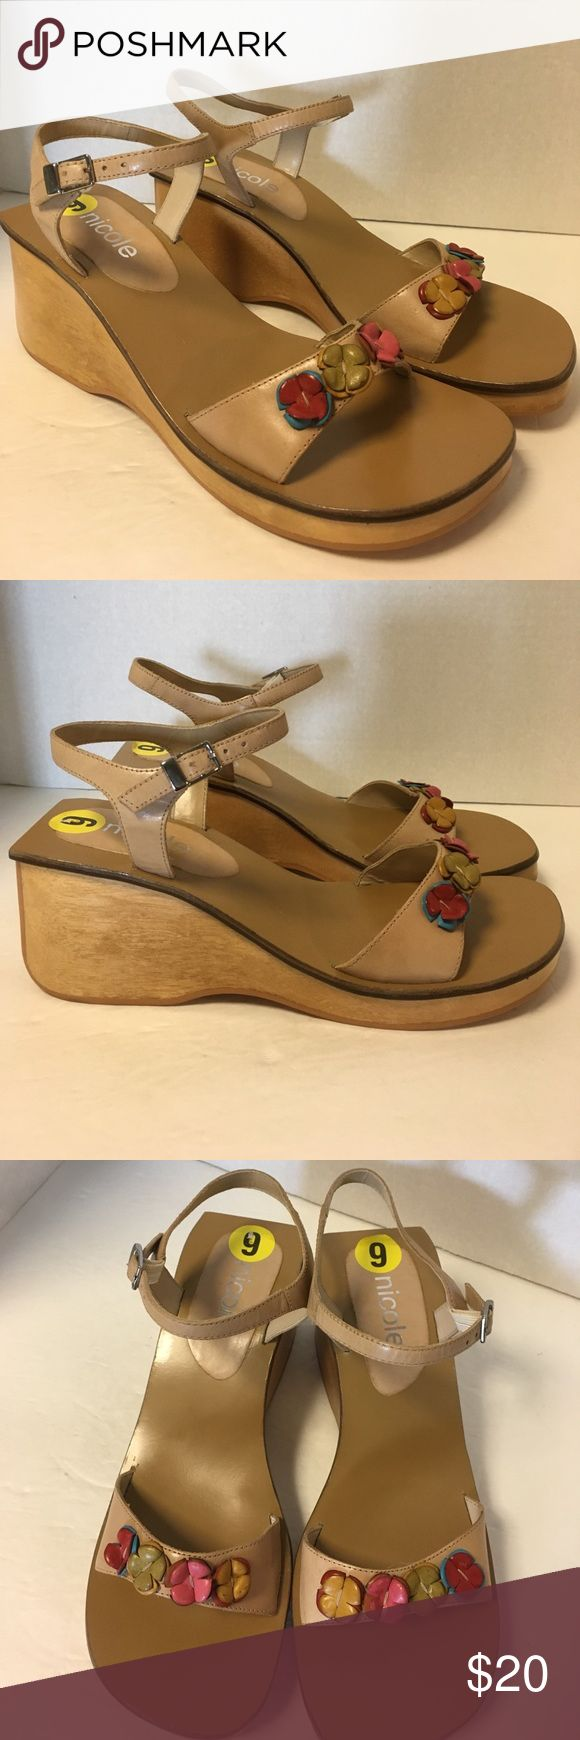 NWT Nicole Wood Block Wedge Sandals w/ Flowers 9 Cute cute cute!!!!   NEW-  Original price $49.99- TJ Max price $29.99.  I sell through various venues so if you like them, don't hesitate! Nicole Shoes Sandals